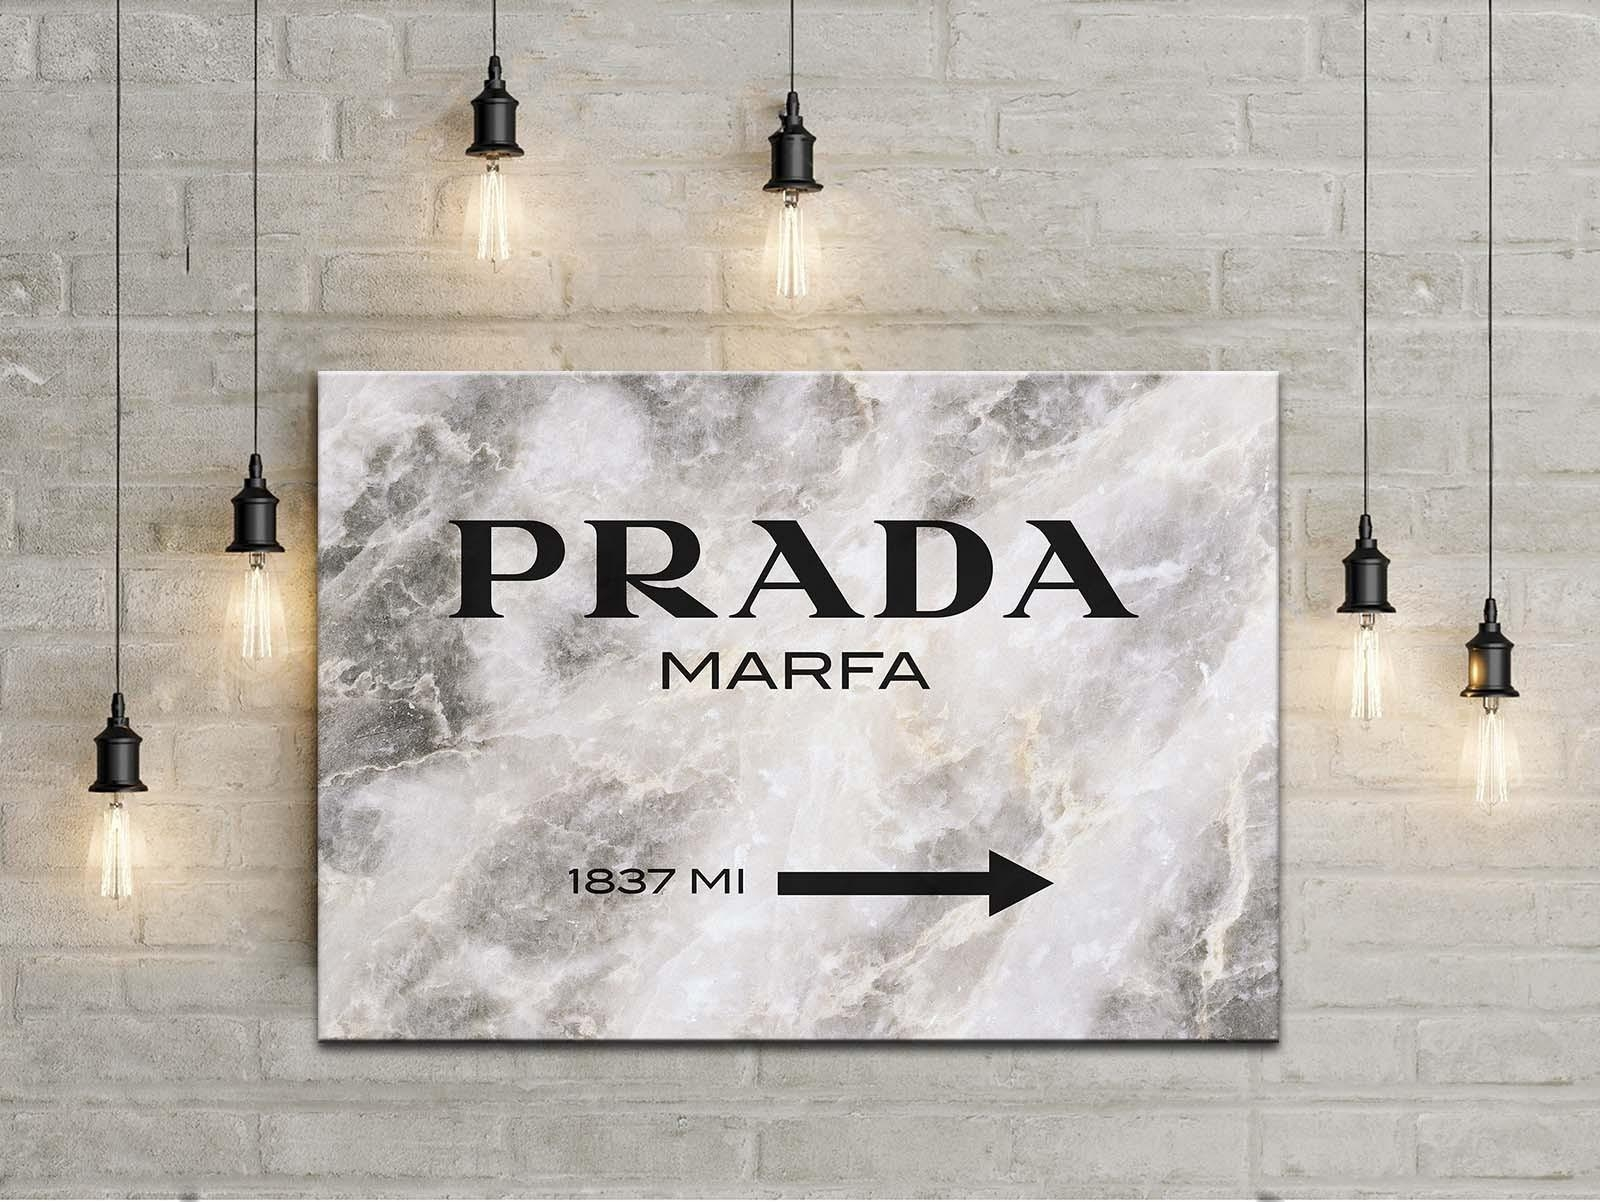 Prada Marfa Gossip Girl Sign, Painting Canvas Art, Wall Art, Home Regarding Prada Wall Art (Image 12 of 20)